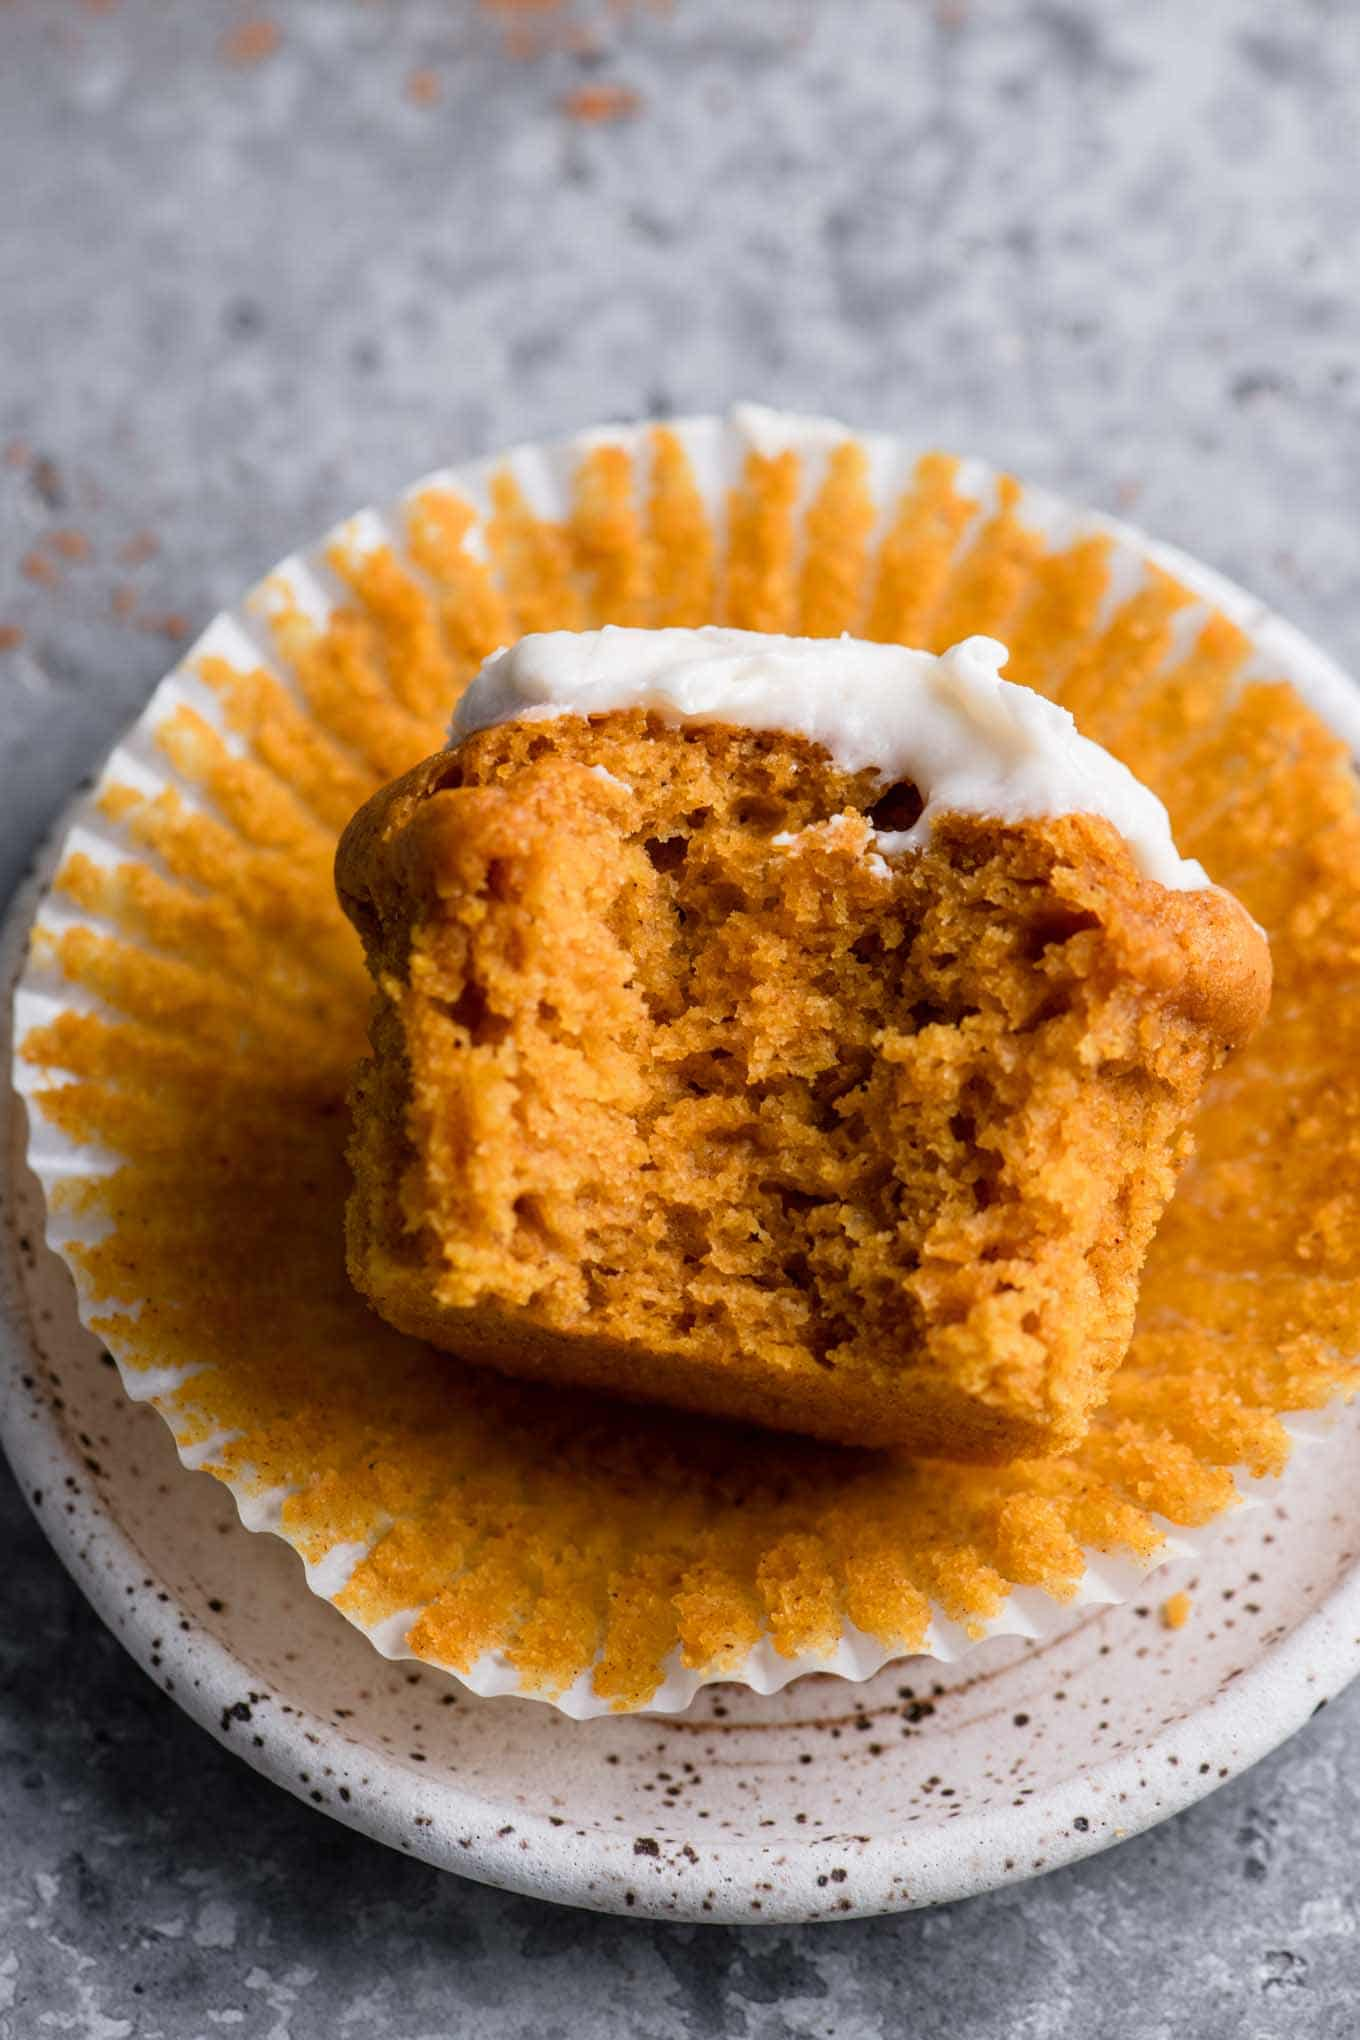 cream cheese frosted vegan pumpkin muffin with bite taken out